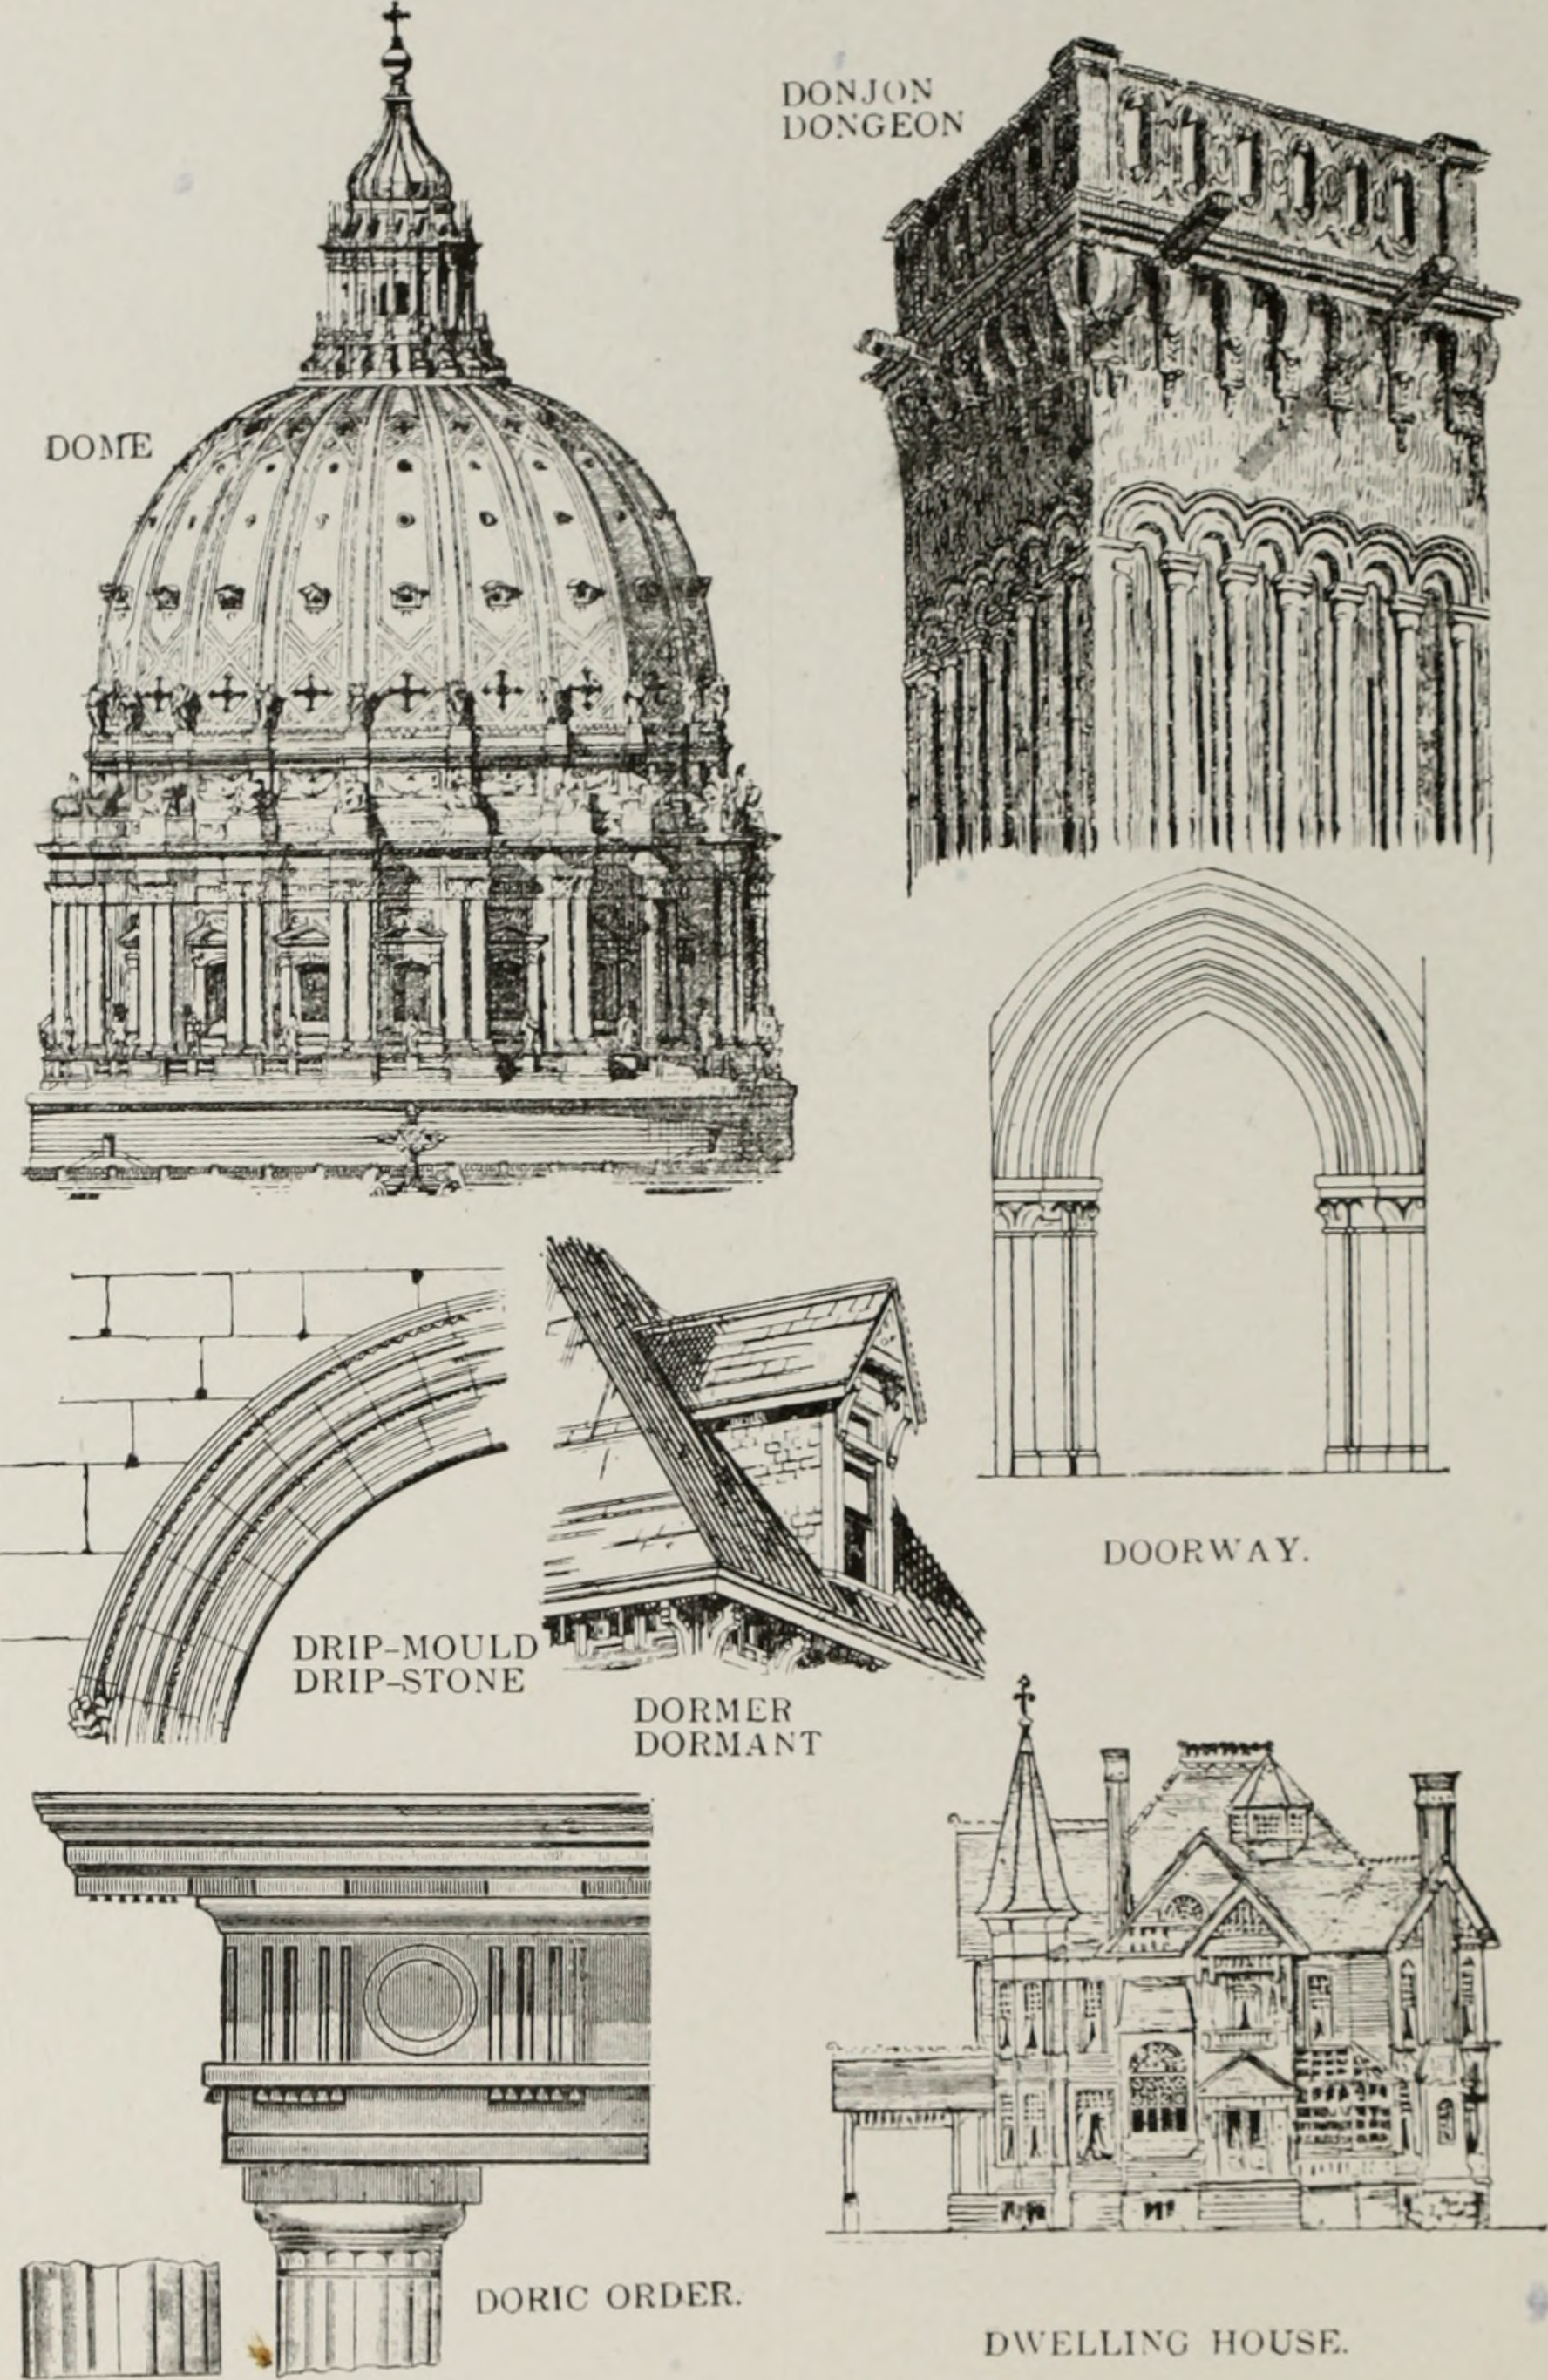 Filethe American Glossary Of Architectural Terms, Being A